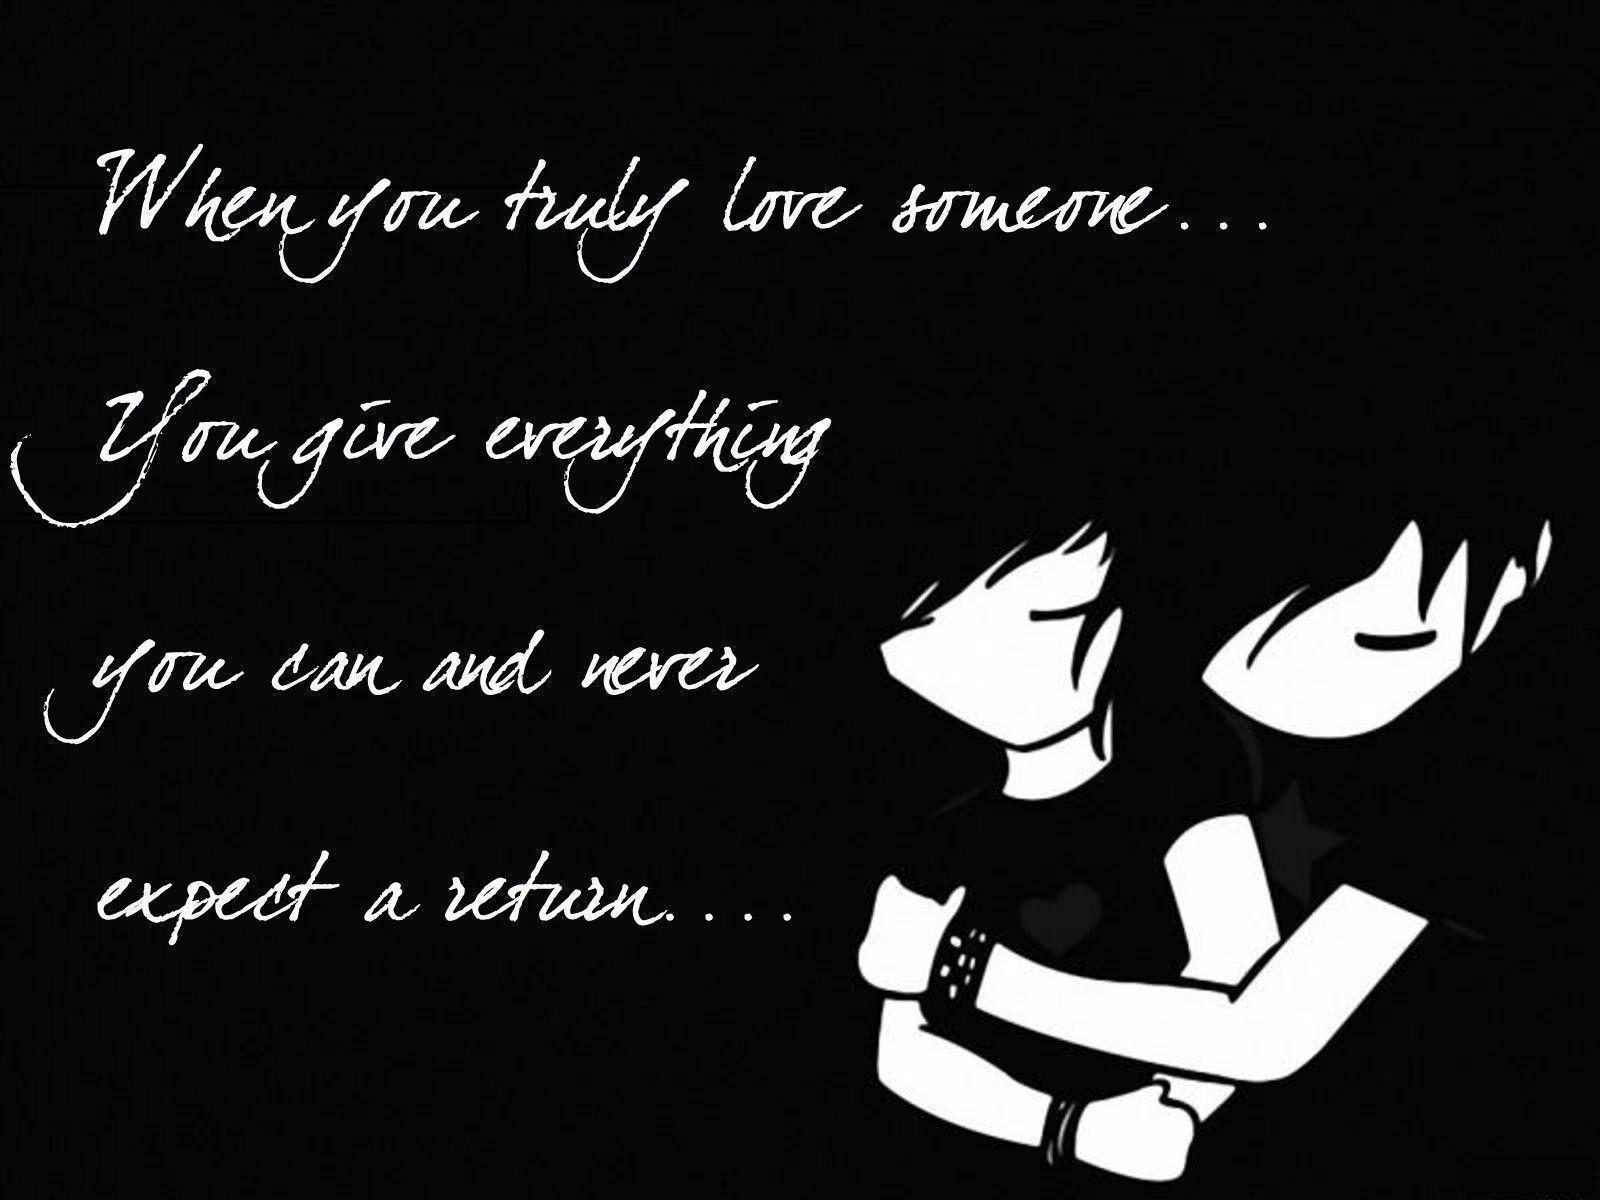 love hurts quotes wallpapers - wallpaper cave